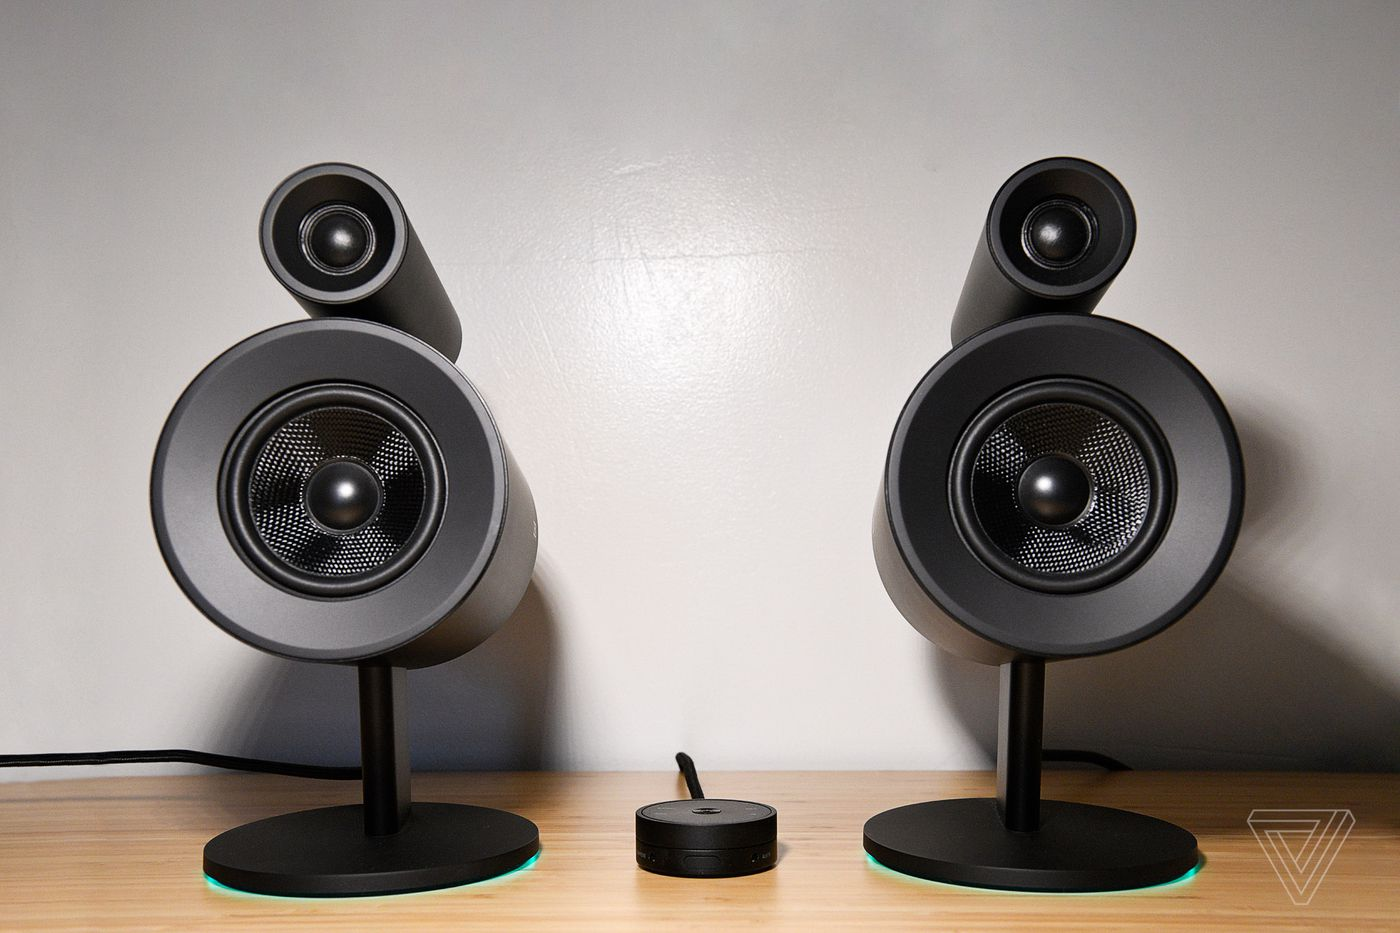 Razer Nommo Pro speakers review: versatility comes at a price - The